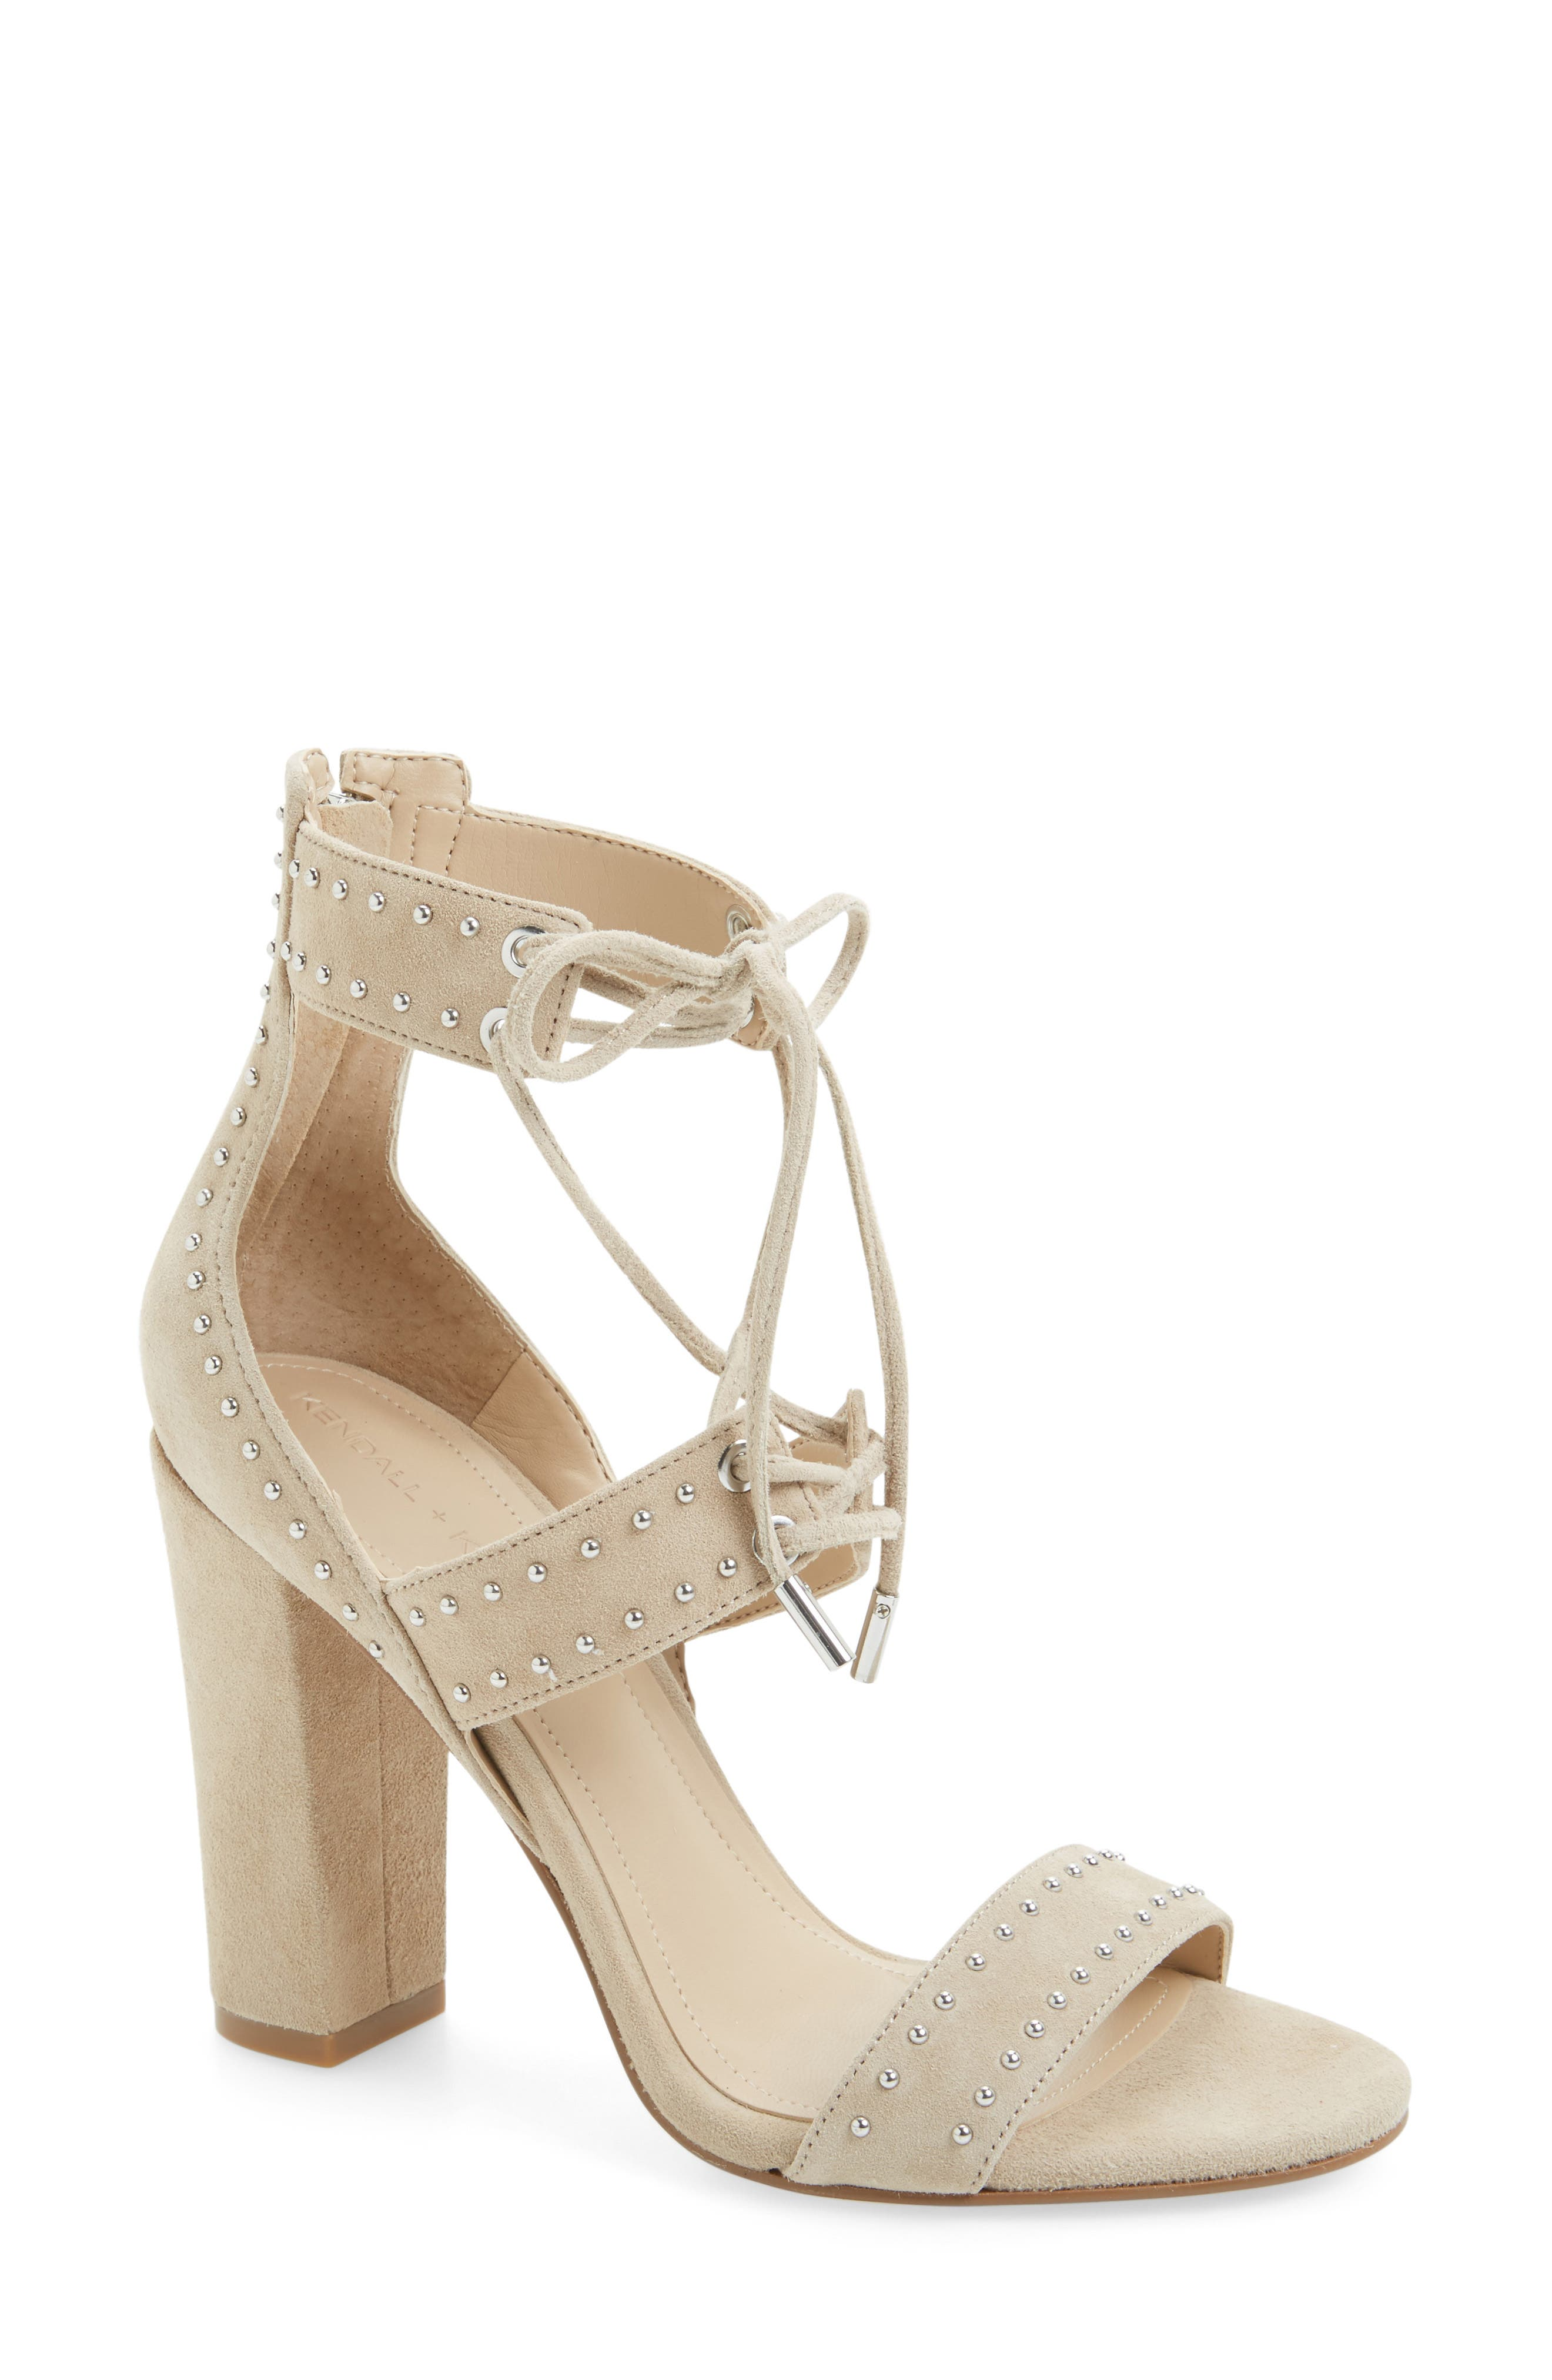 KENDALL + KYLIE Dawn Pump (Women)